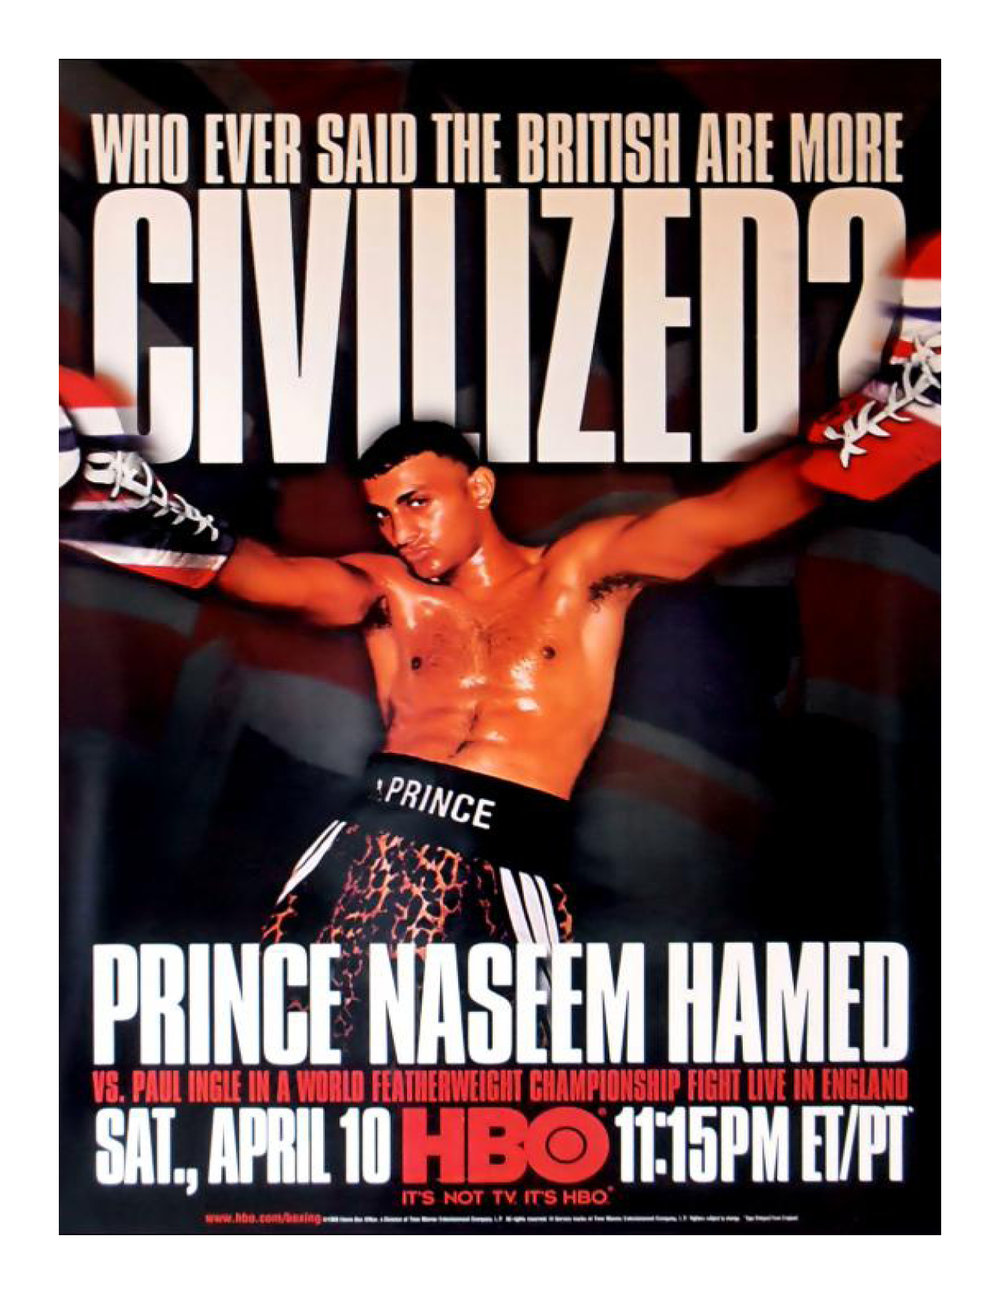 HBO Boxing P360 Website21.jpg